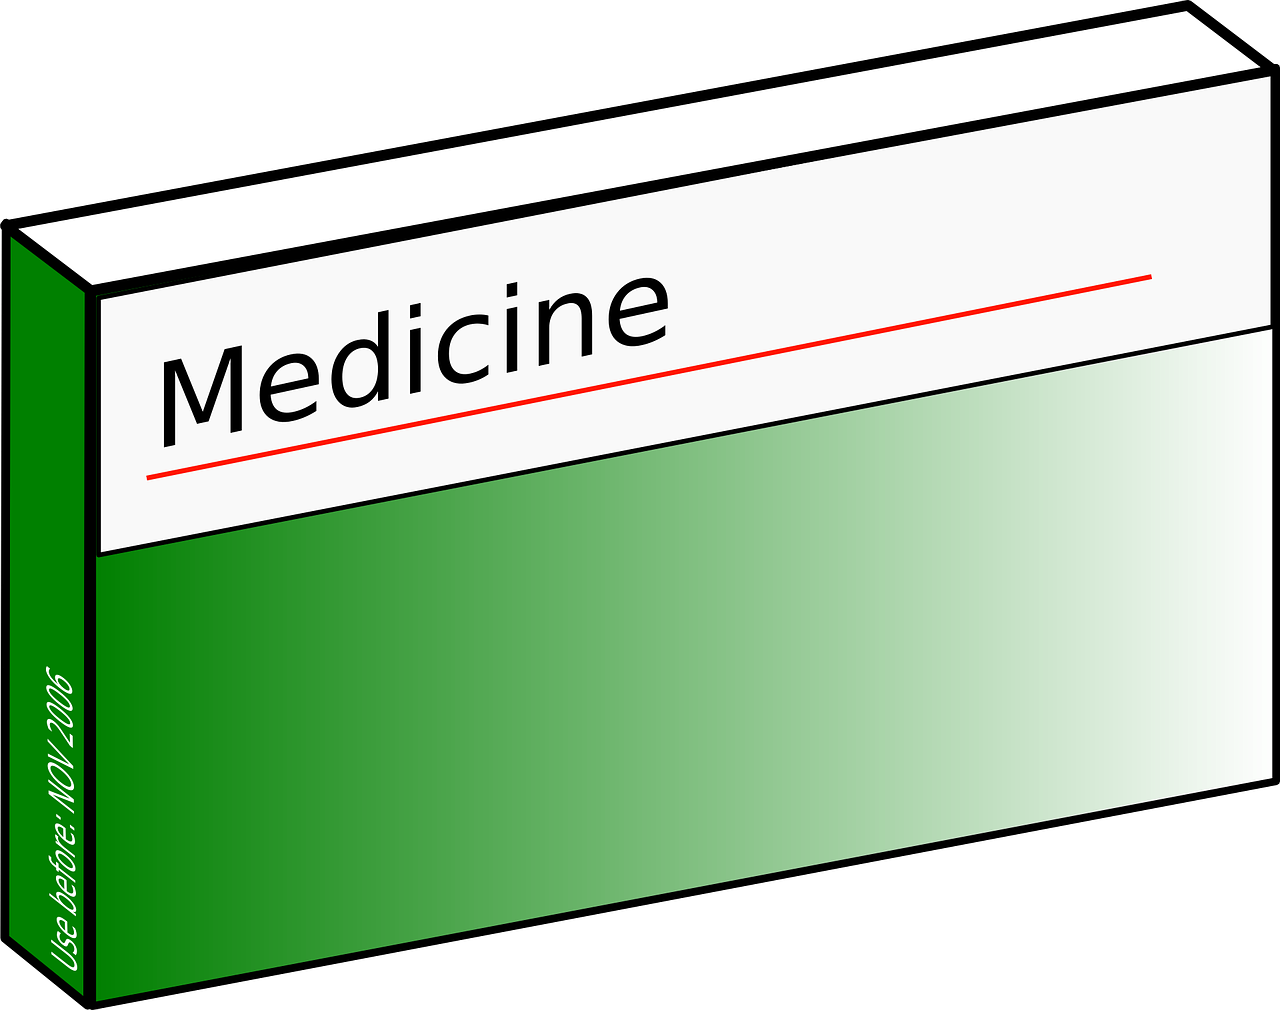 1280x1010 Medical Free To Use Clip Art Image